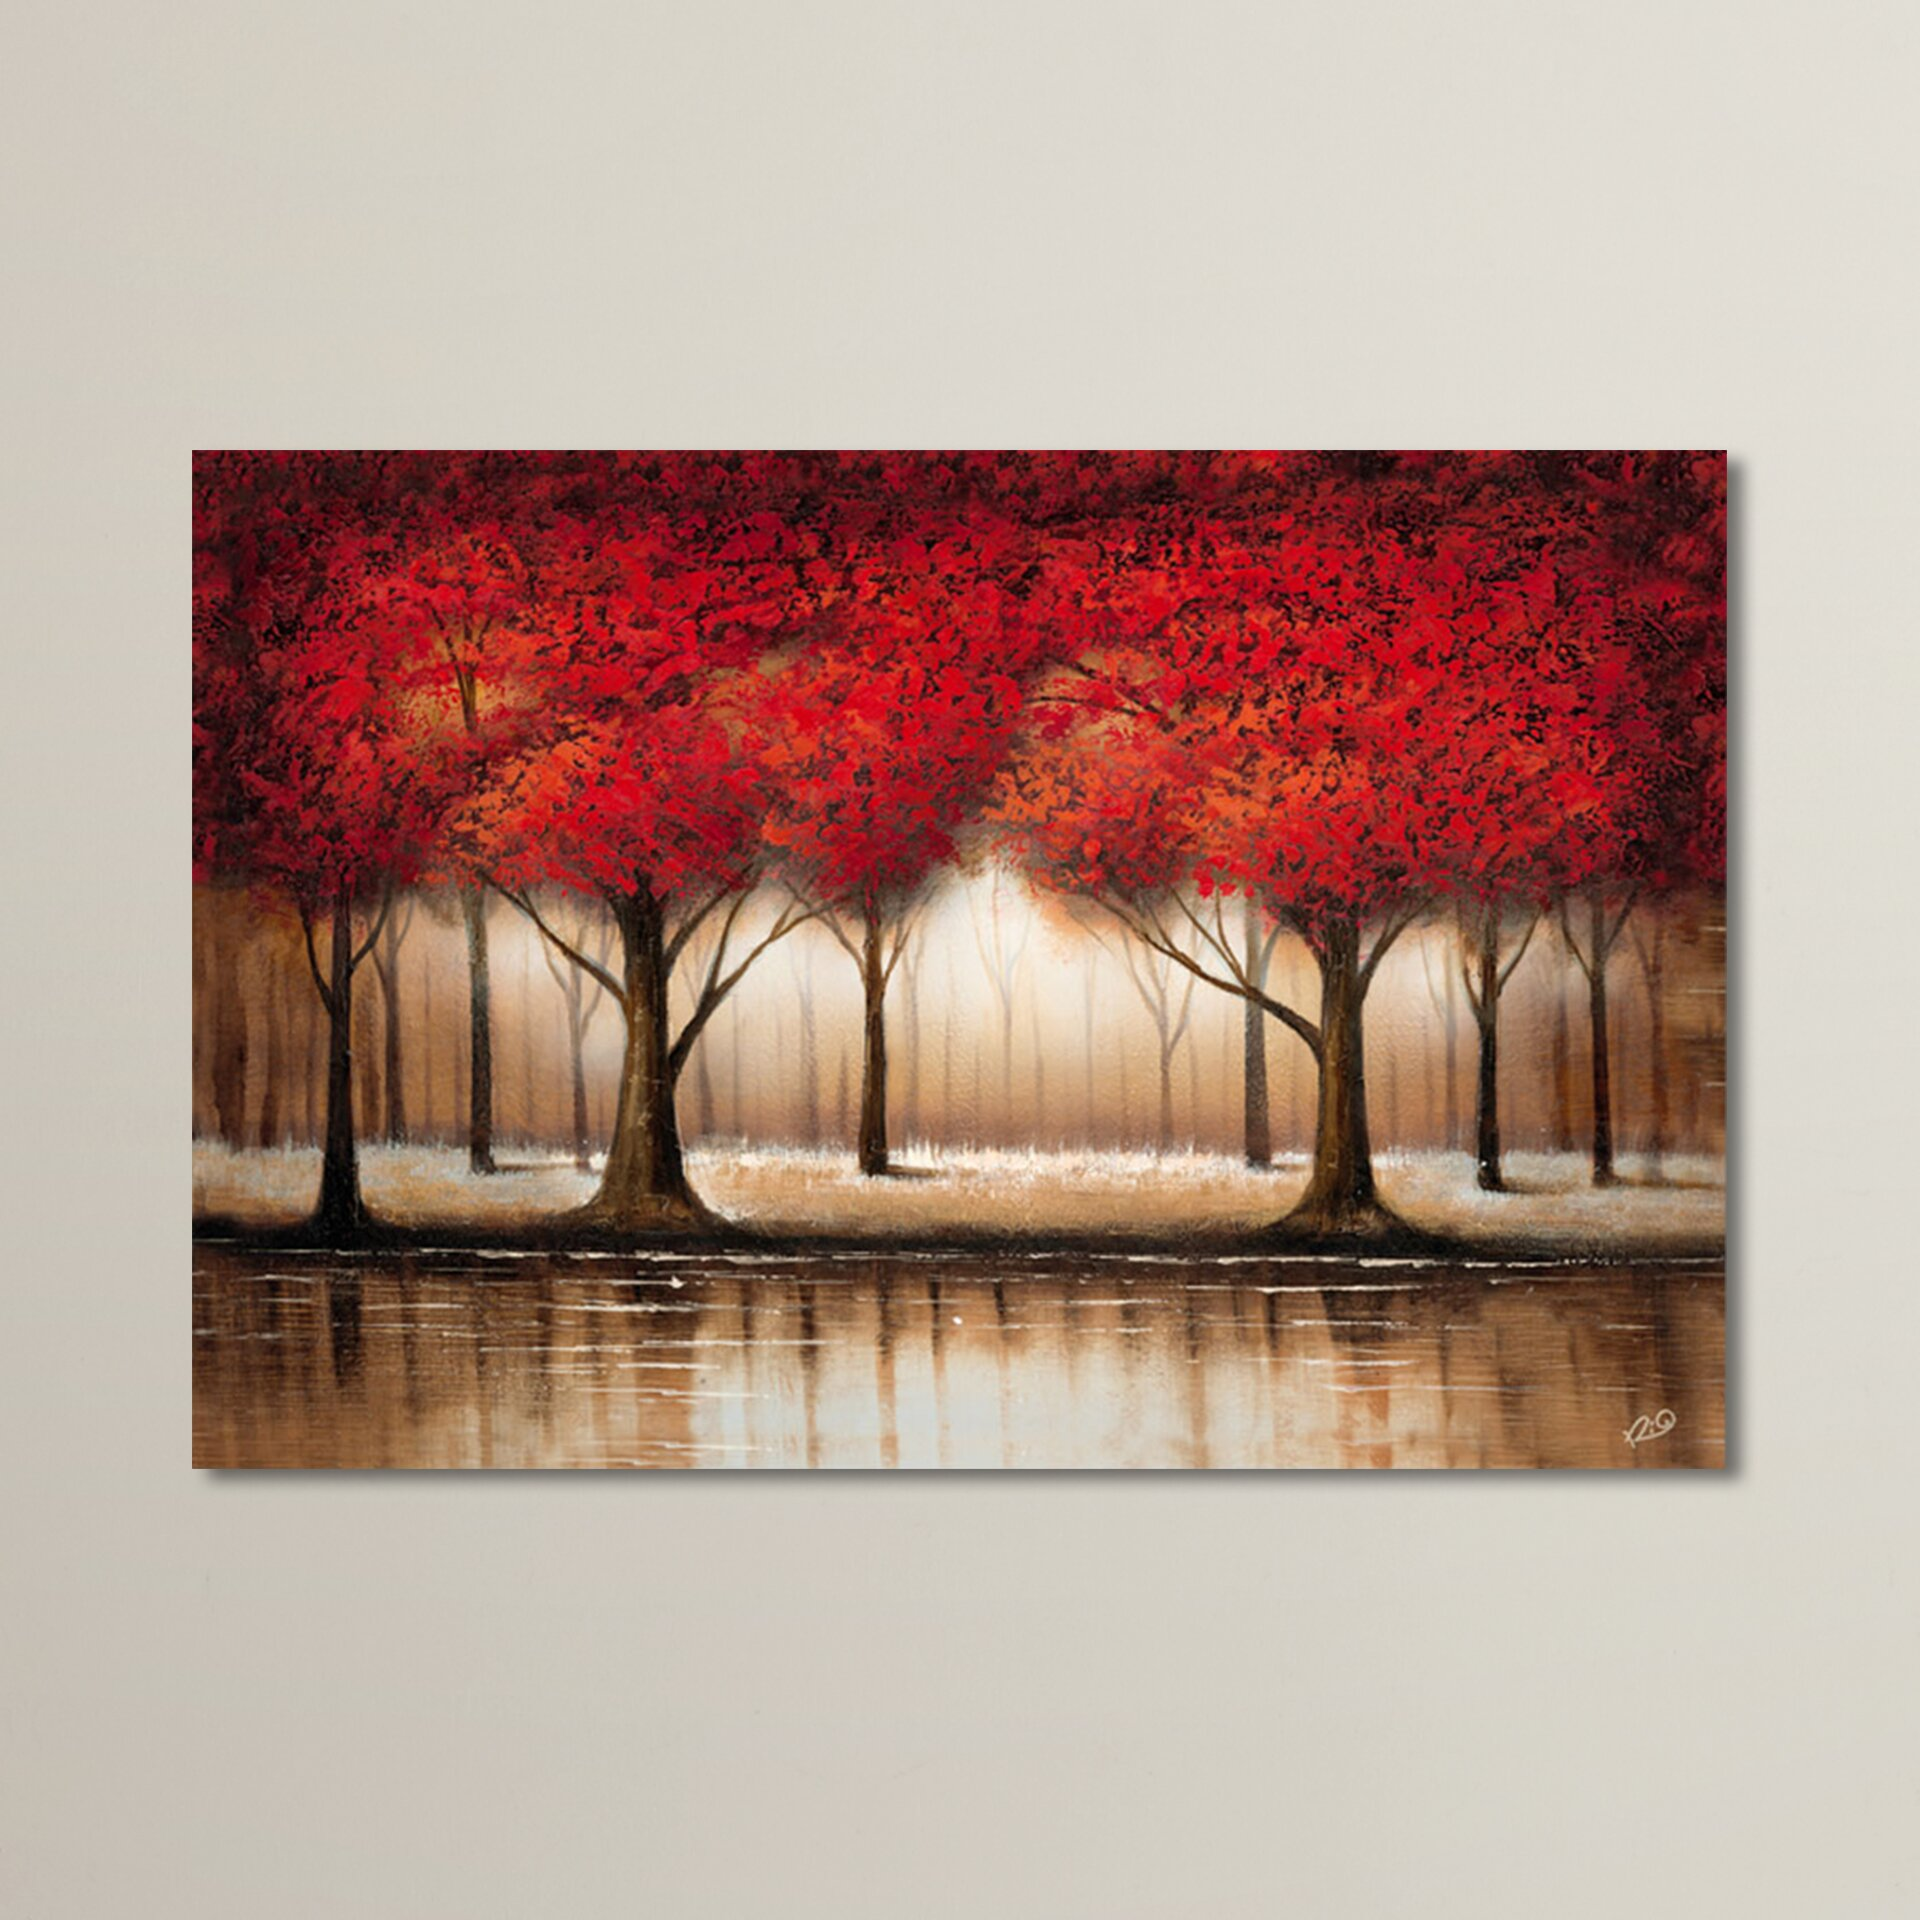 Trademark Art 39 Parade Of Red Trees 39 On Canvas Reviews